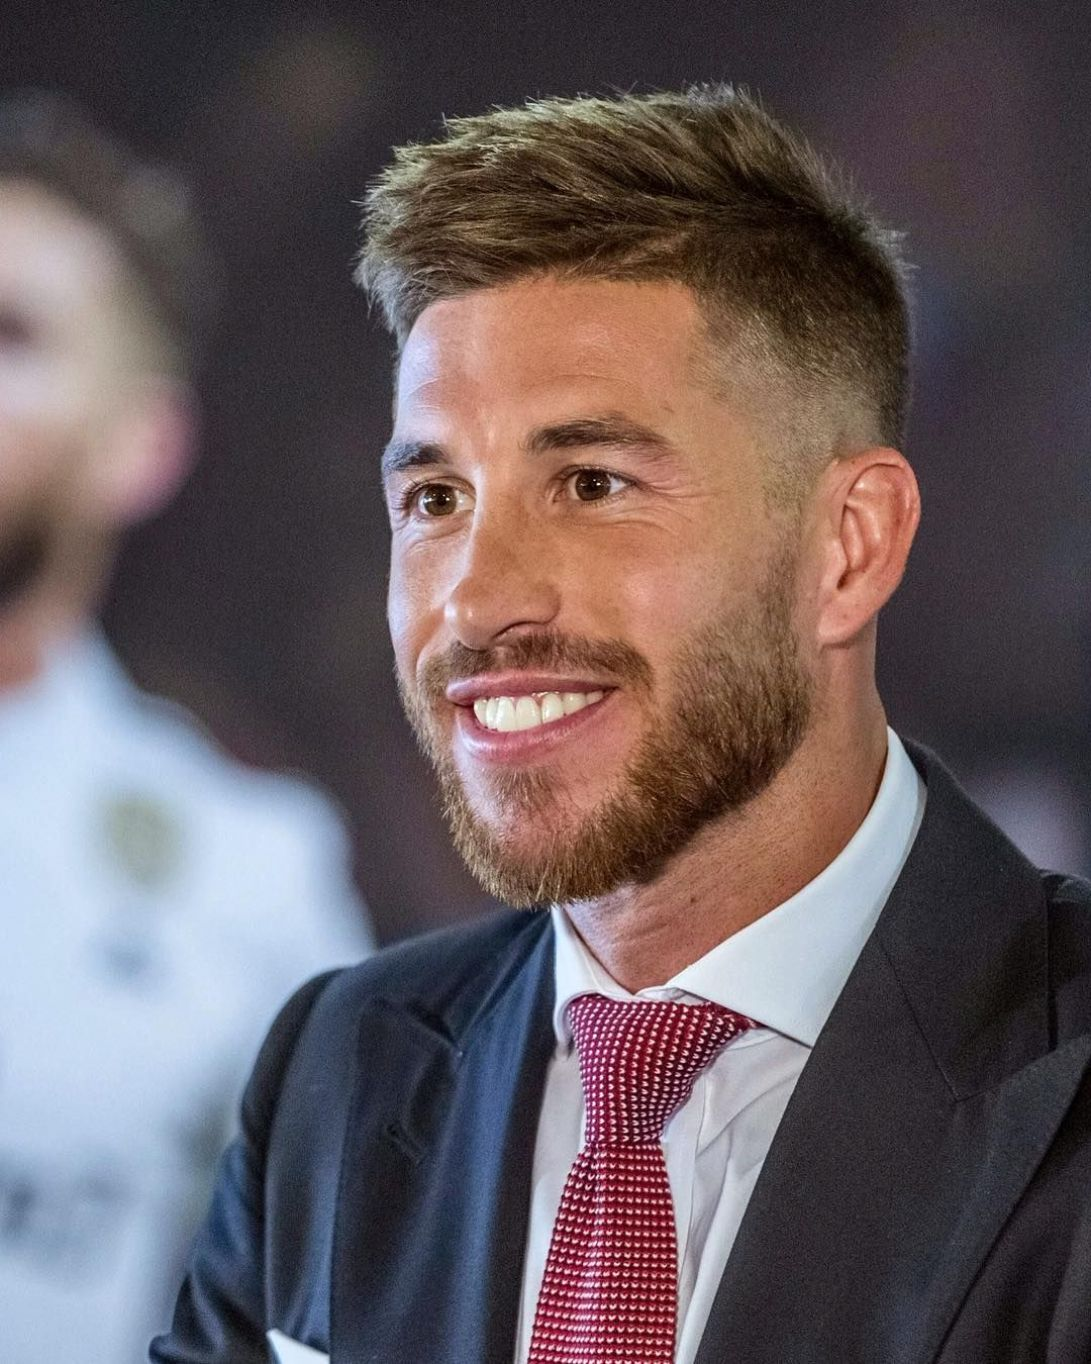 Breathtaking Soccer Players Haircuts Best Look Perfect Men Hairstyle Soccer Players Haircuts Ramos Haircut Soccer Hairstyles Mens Hairstyles